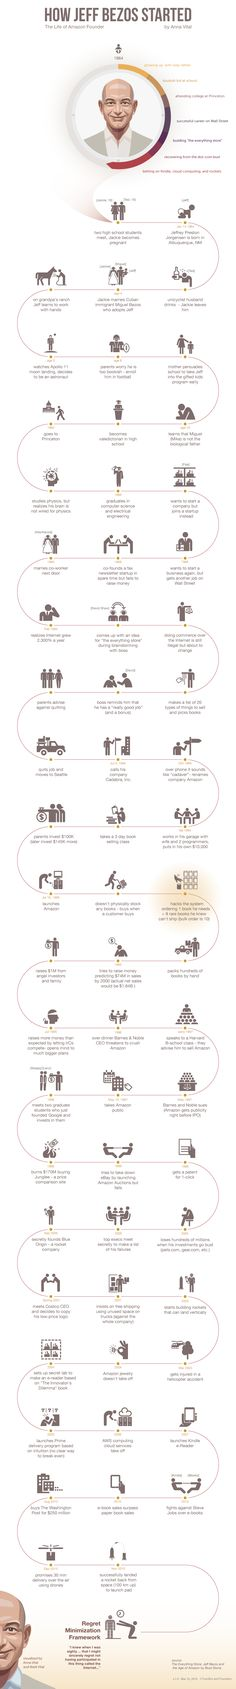 How Jeff Bezos Built His Amazon Empire Infographic